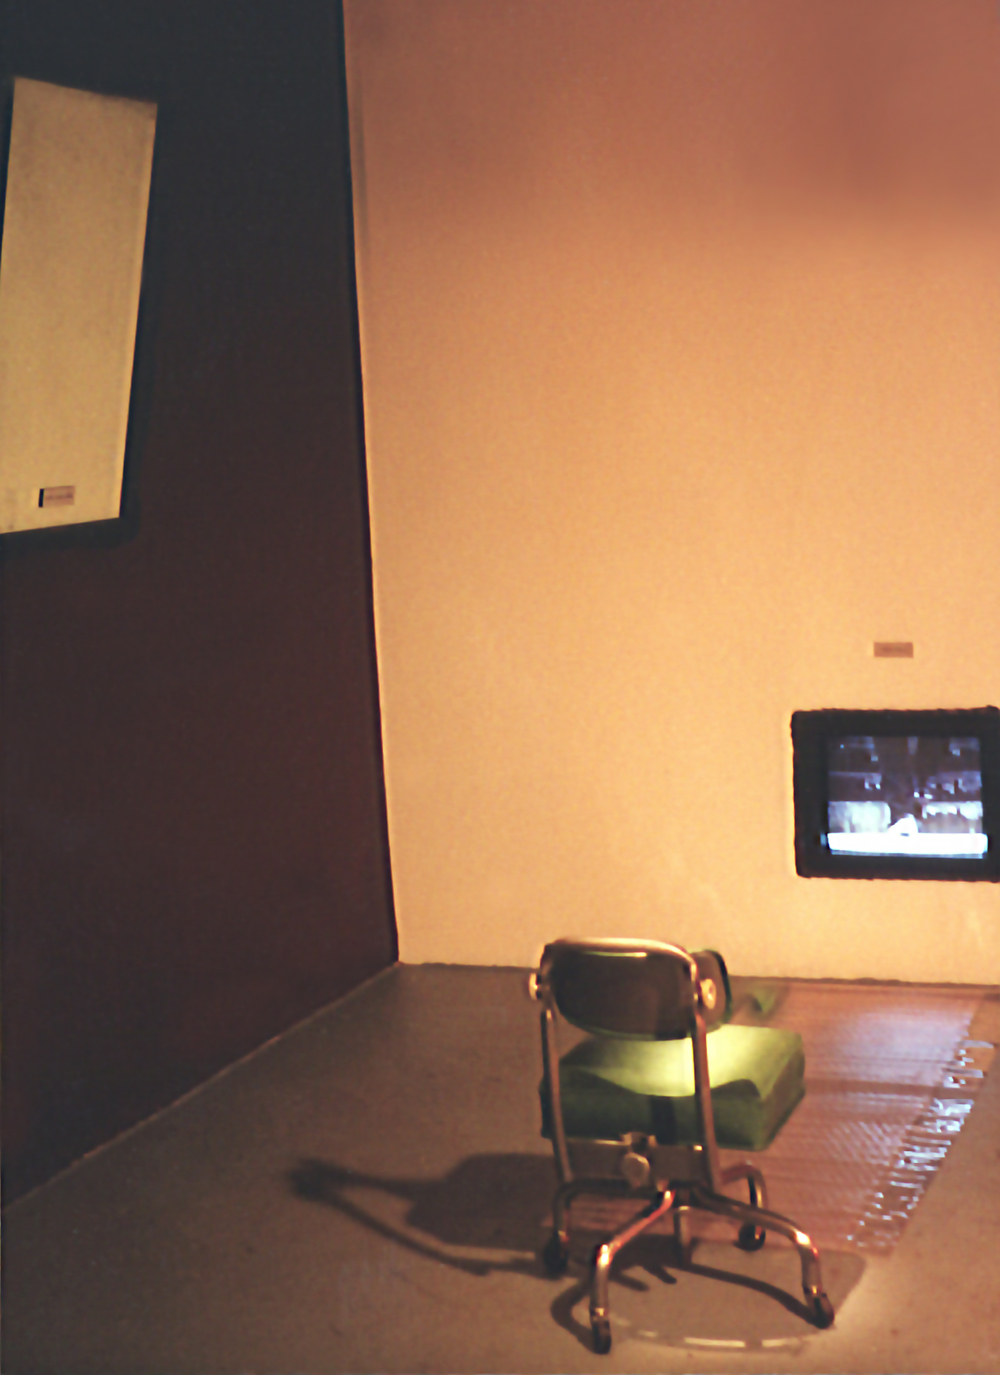 View of video installation, mirror, chair